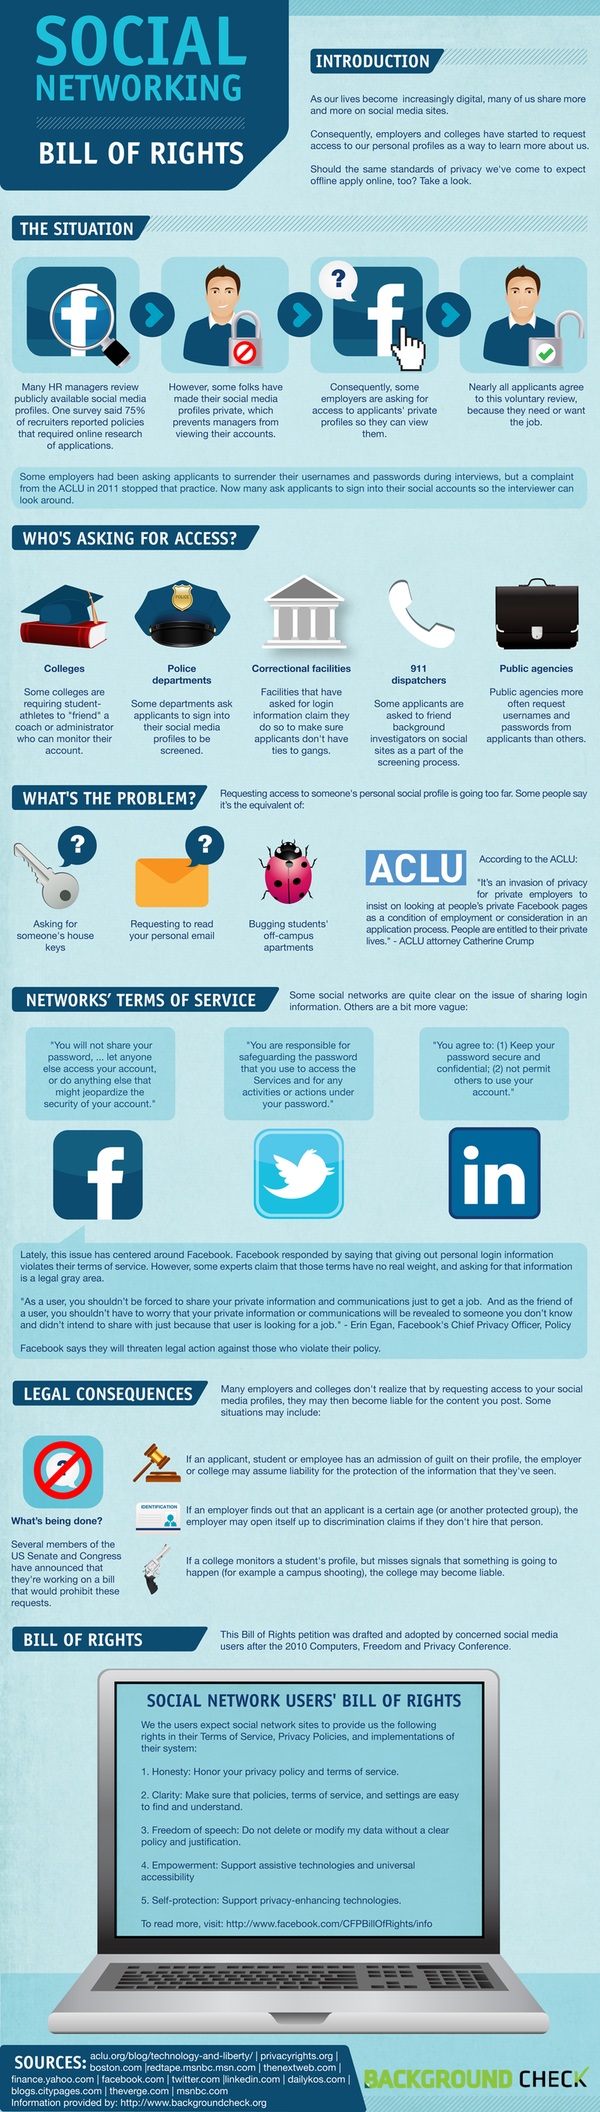 Social-Networking-Bill-of-Rights-9721